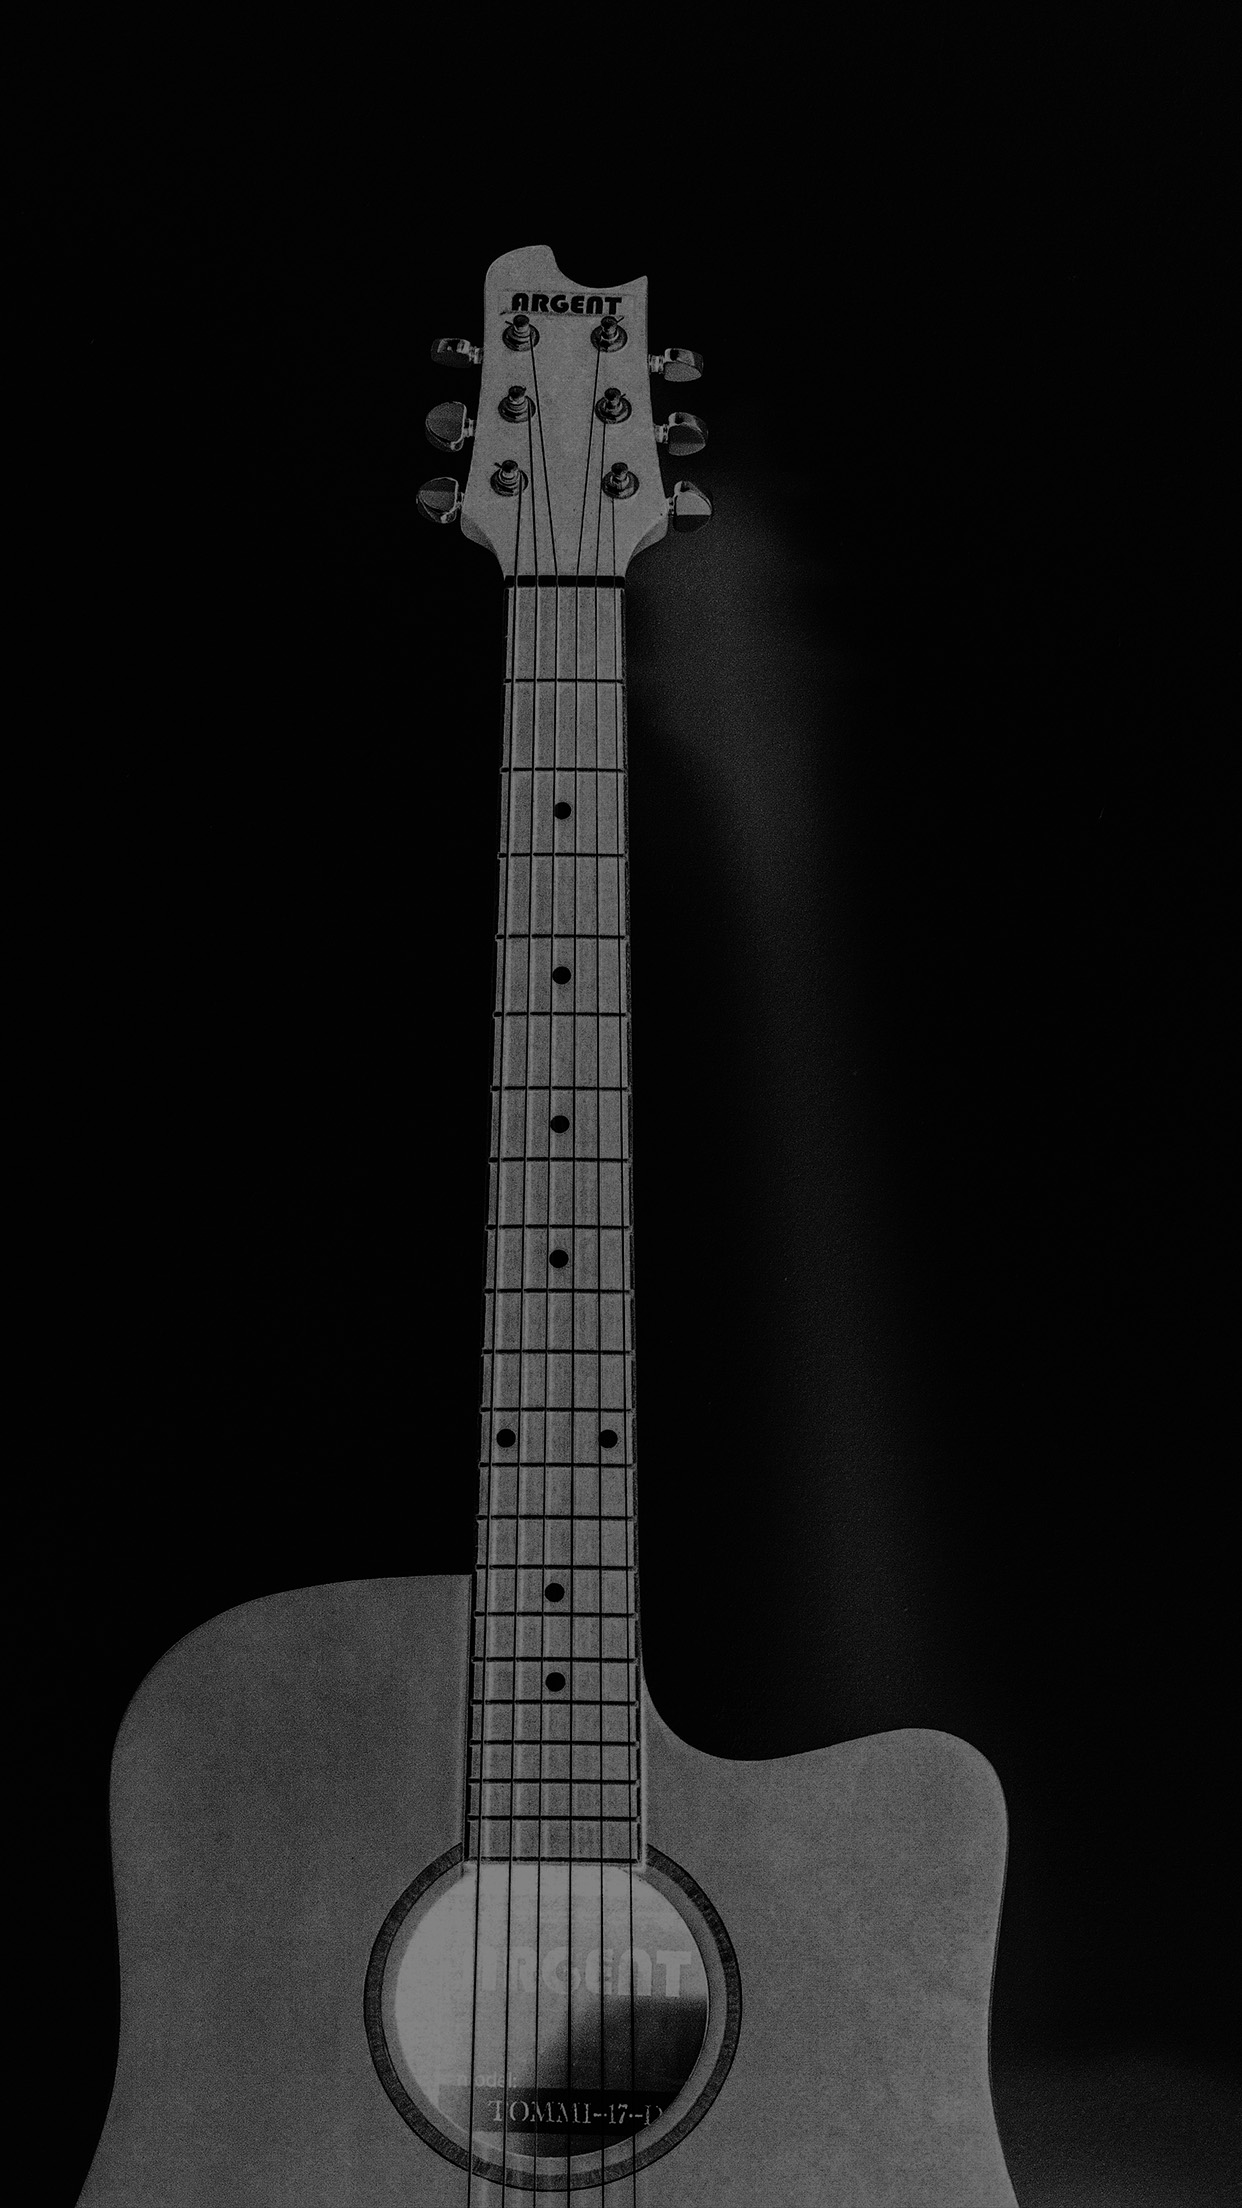 Iphonepaperscom Iphone Wallpaper Mw80 Guitar Art Bw Dark Music